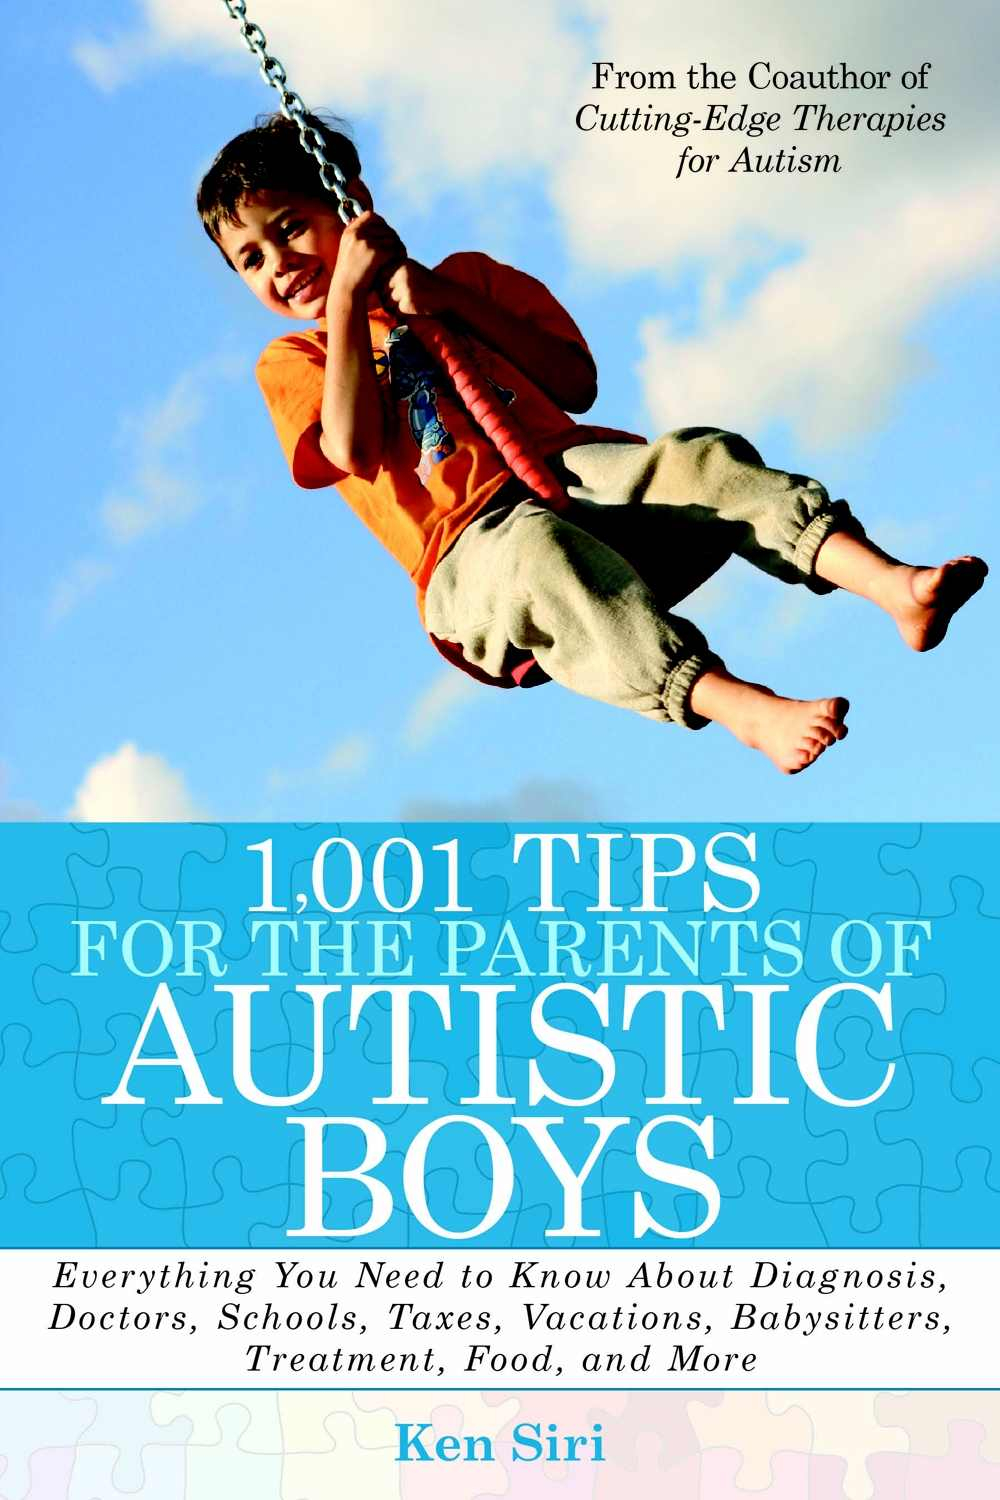 1001 Tips for the parents of autistic boys - Popular Autism Related Book